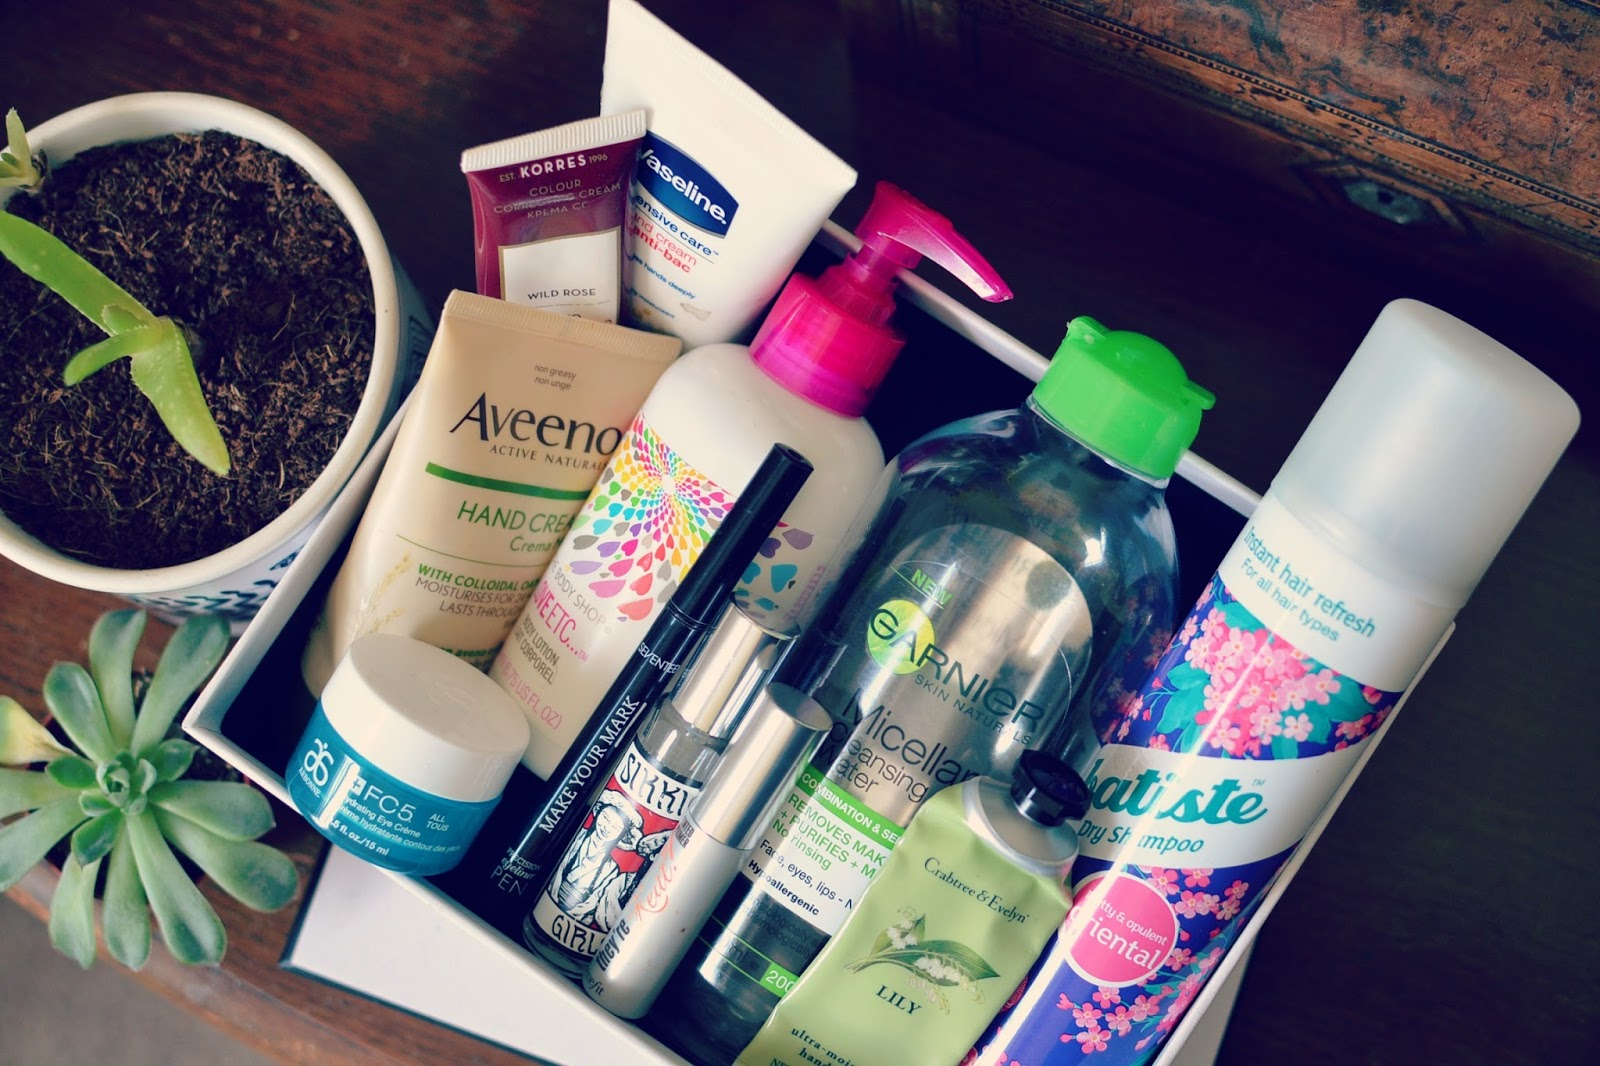 May beauty and makeup empties, products I've used up, repurchased products,